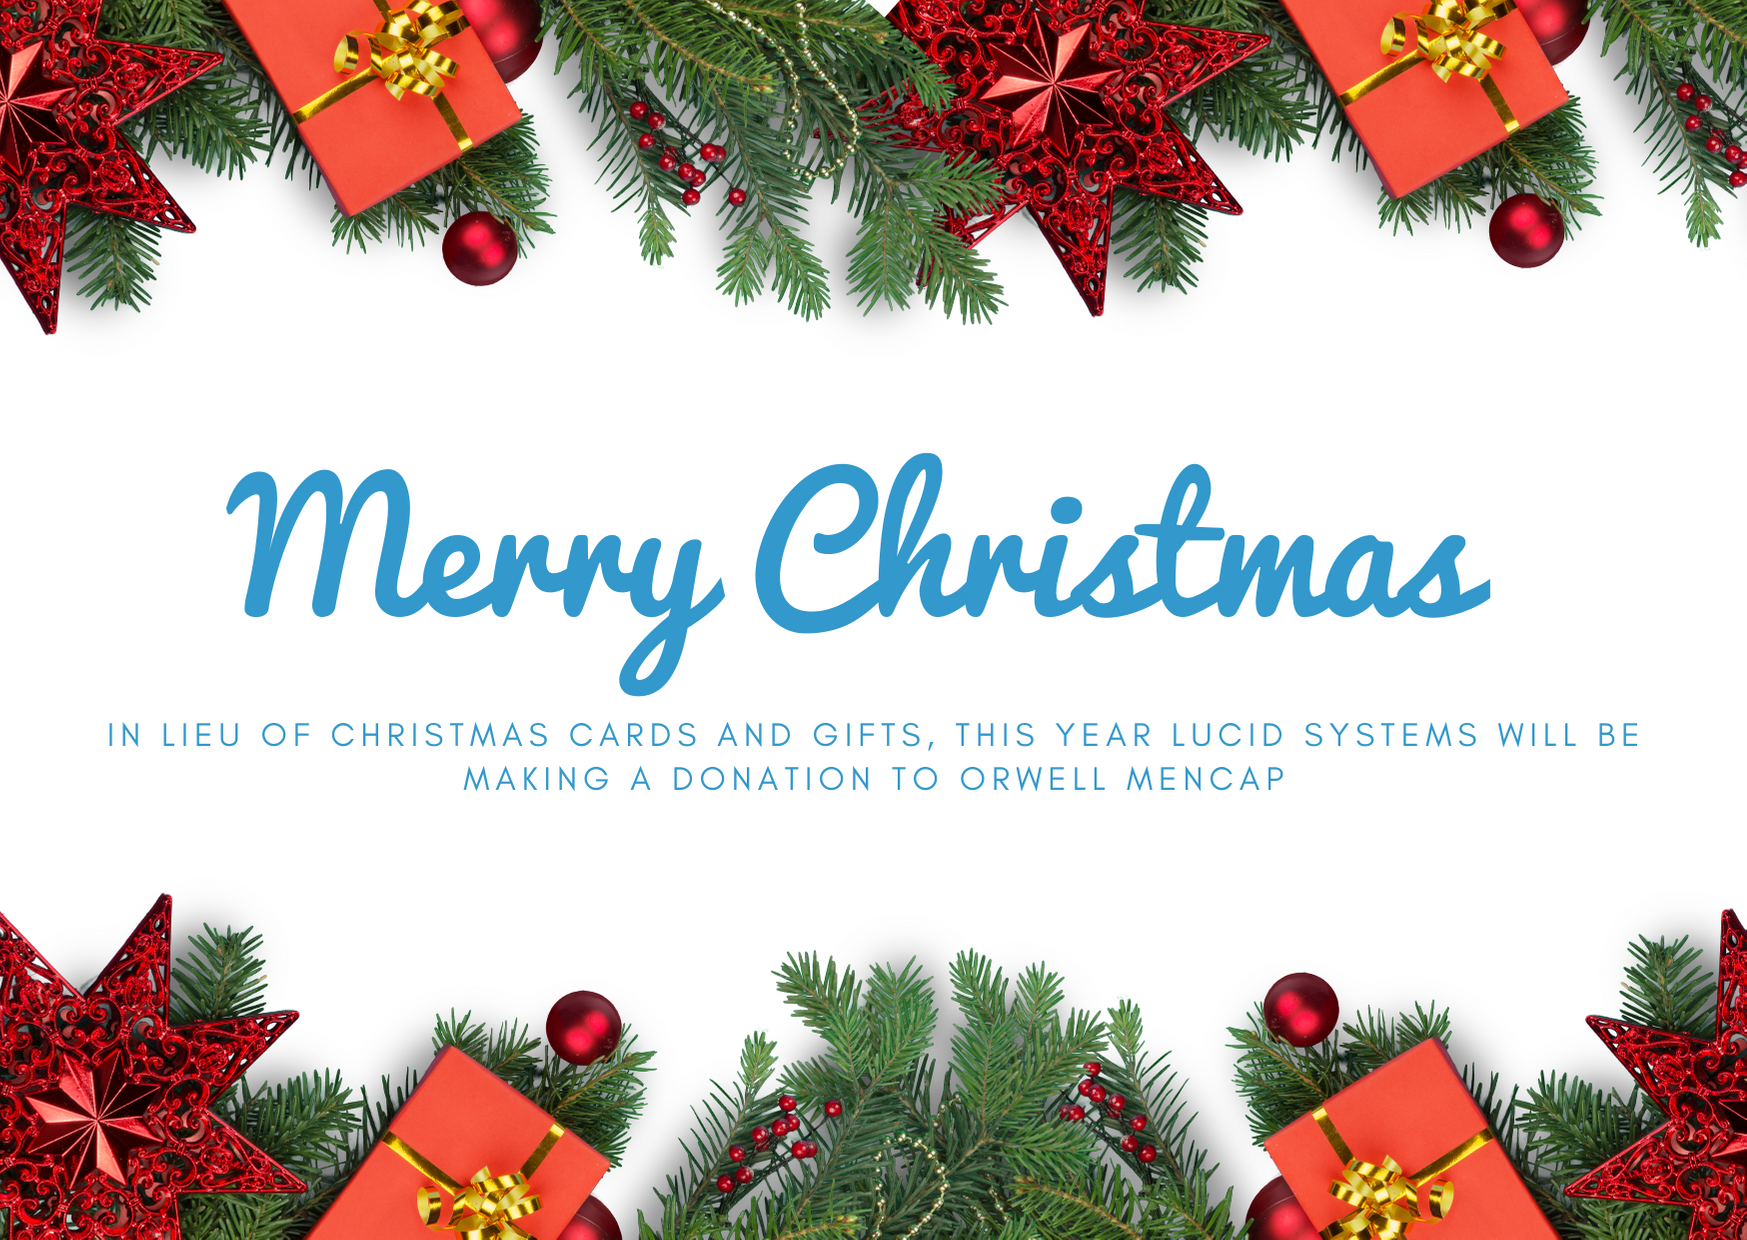 Lucid Systems in Ipswich would like to wish all clients and contacts a very happy Christmas